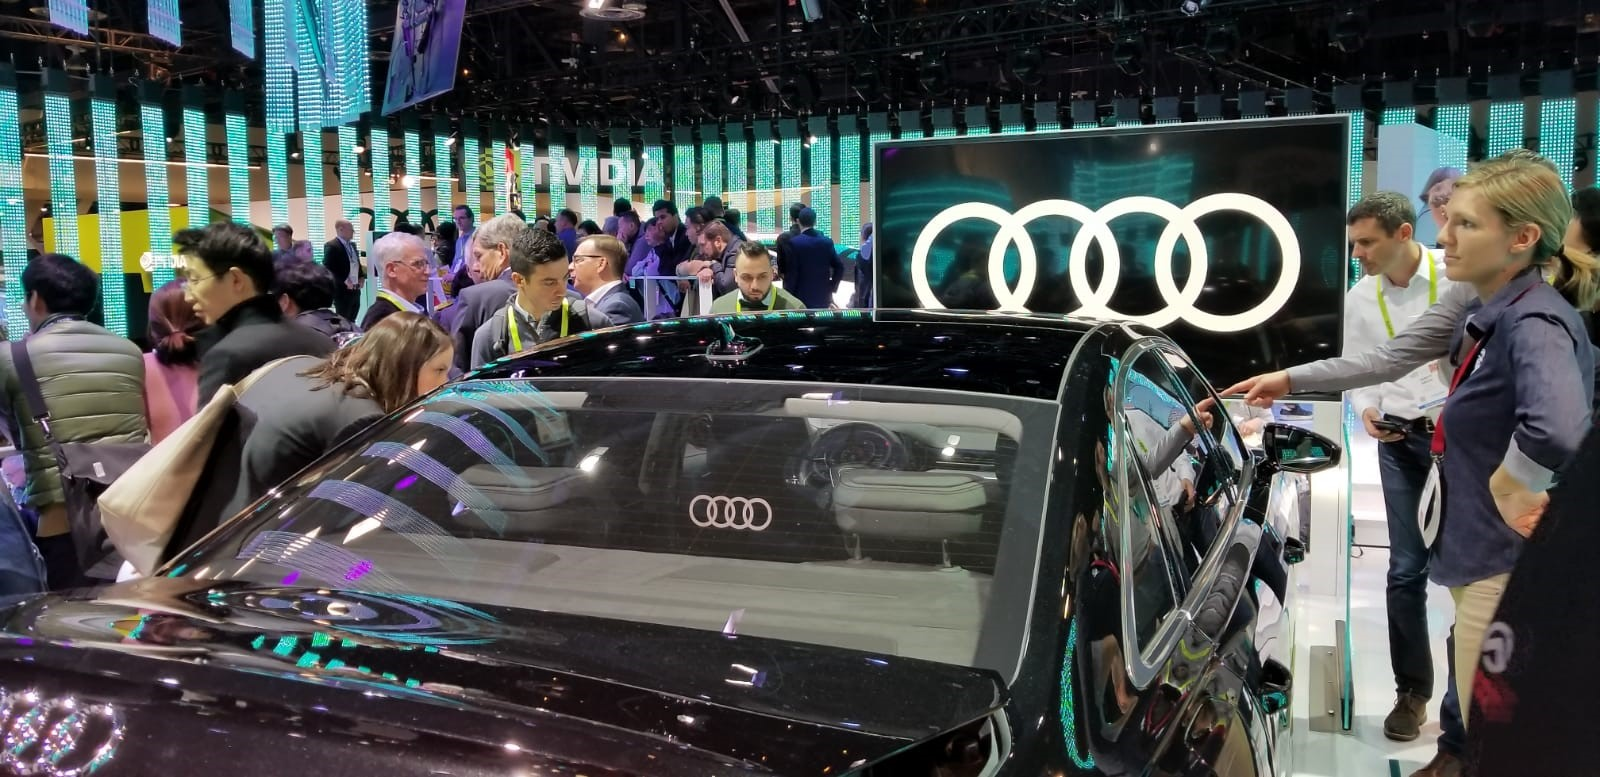 Audi's presentation at CES 2019 focused heavily on its revamped infotainment system.